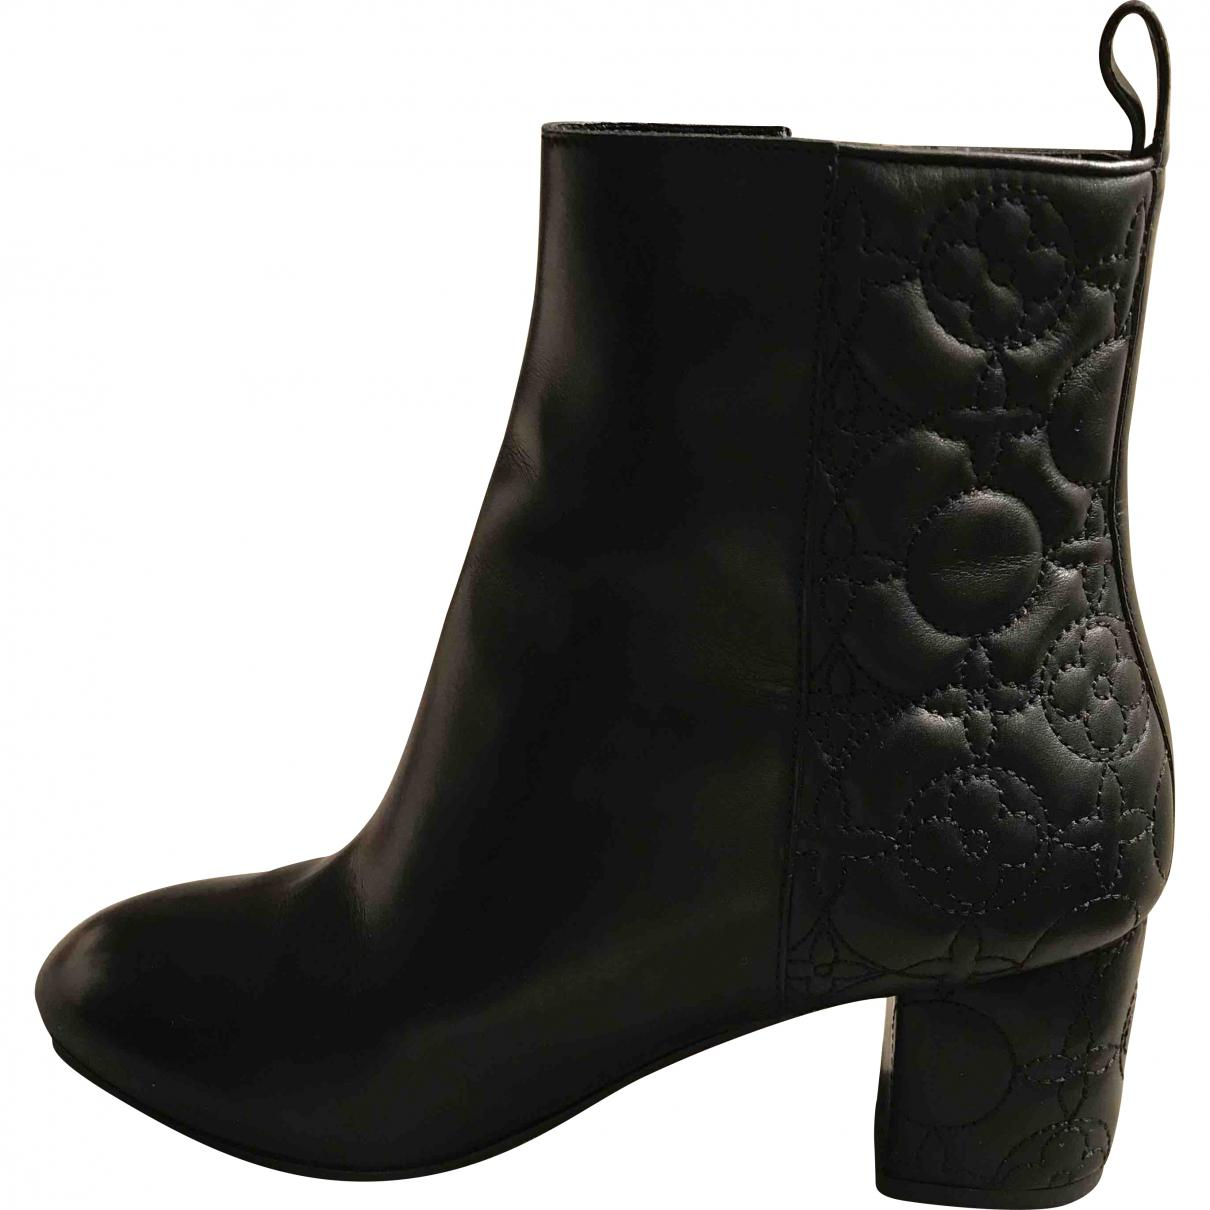 483b80404916 Lyst - Louis Vuitton Leather Boots in Black